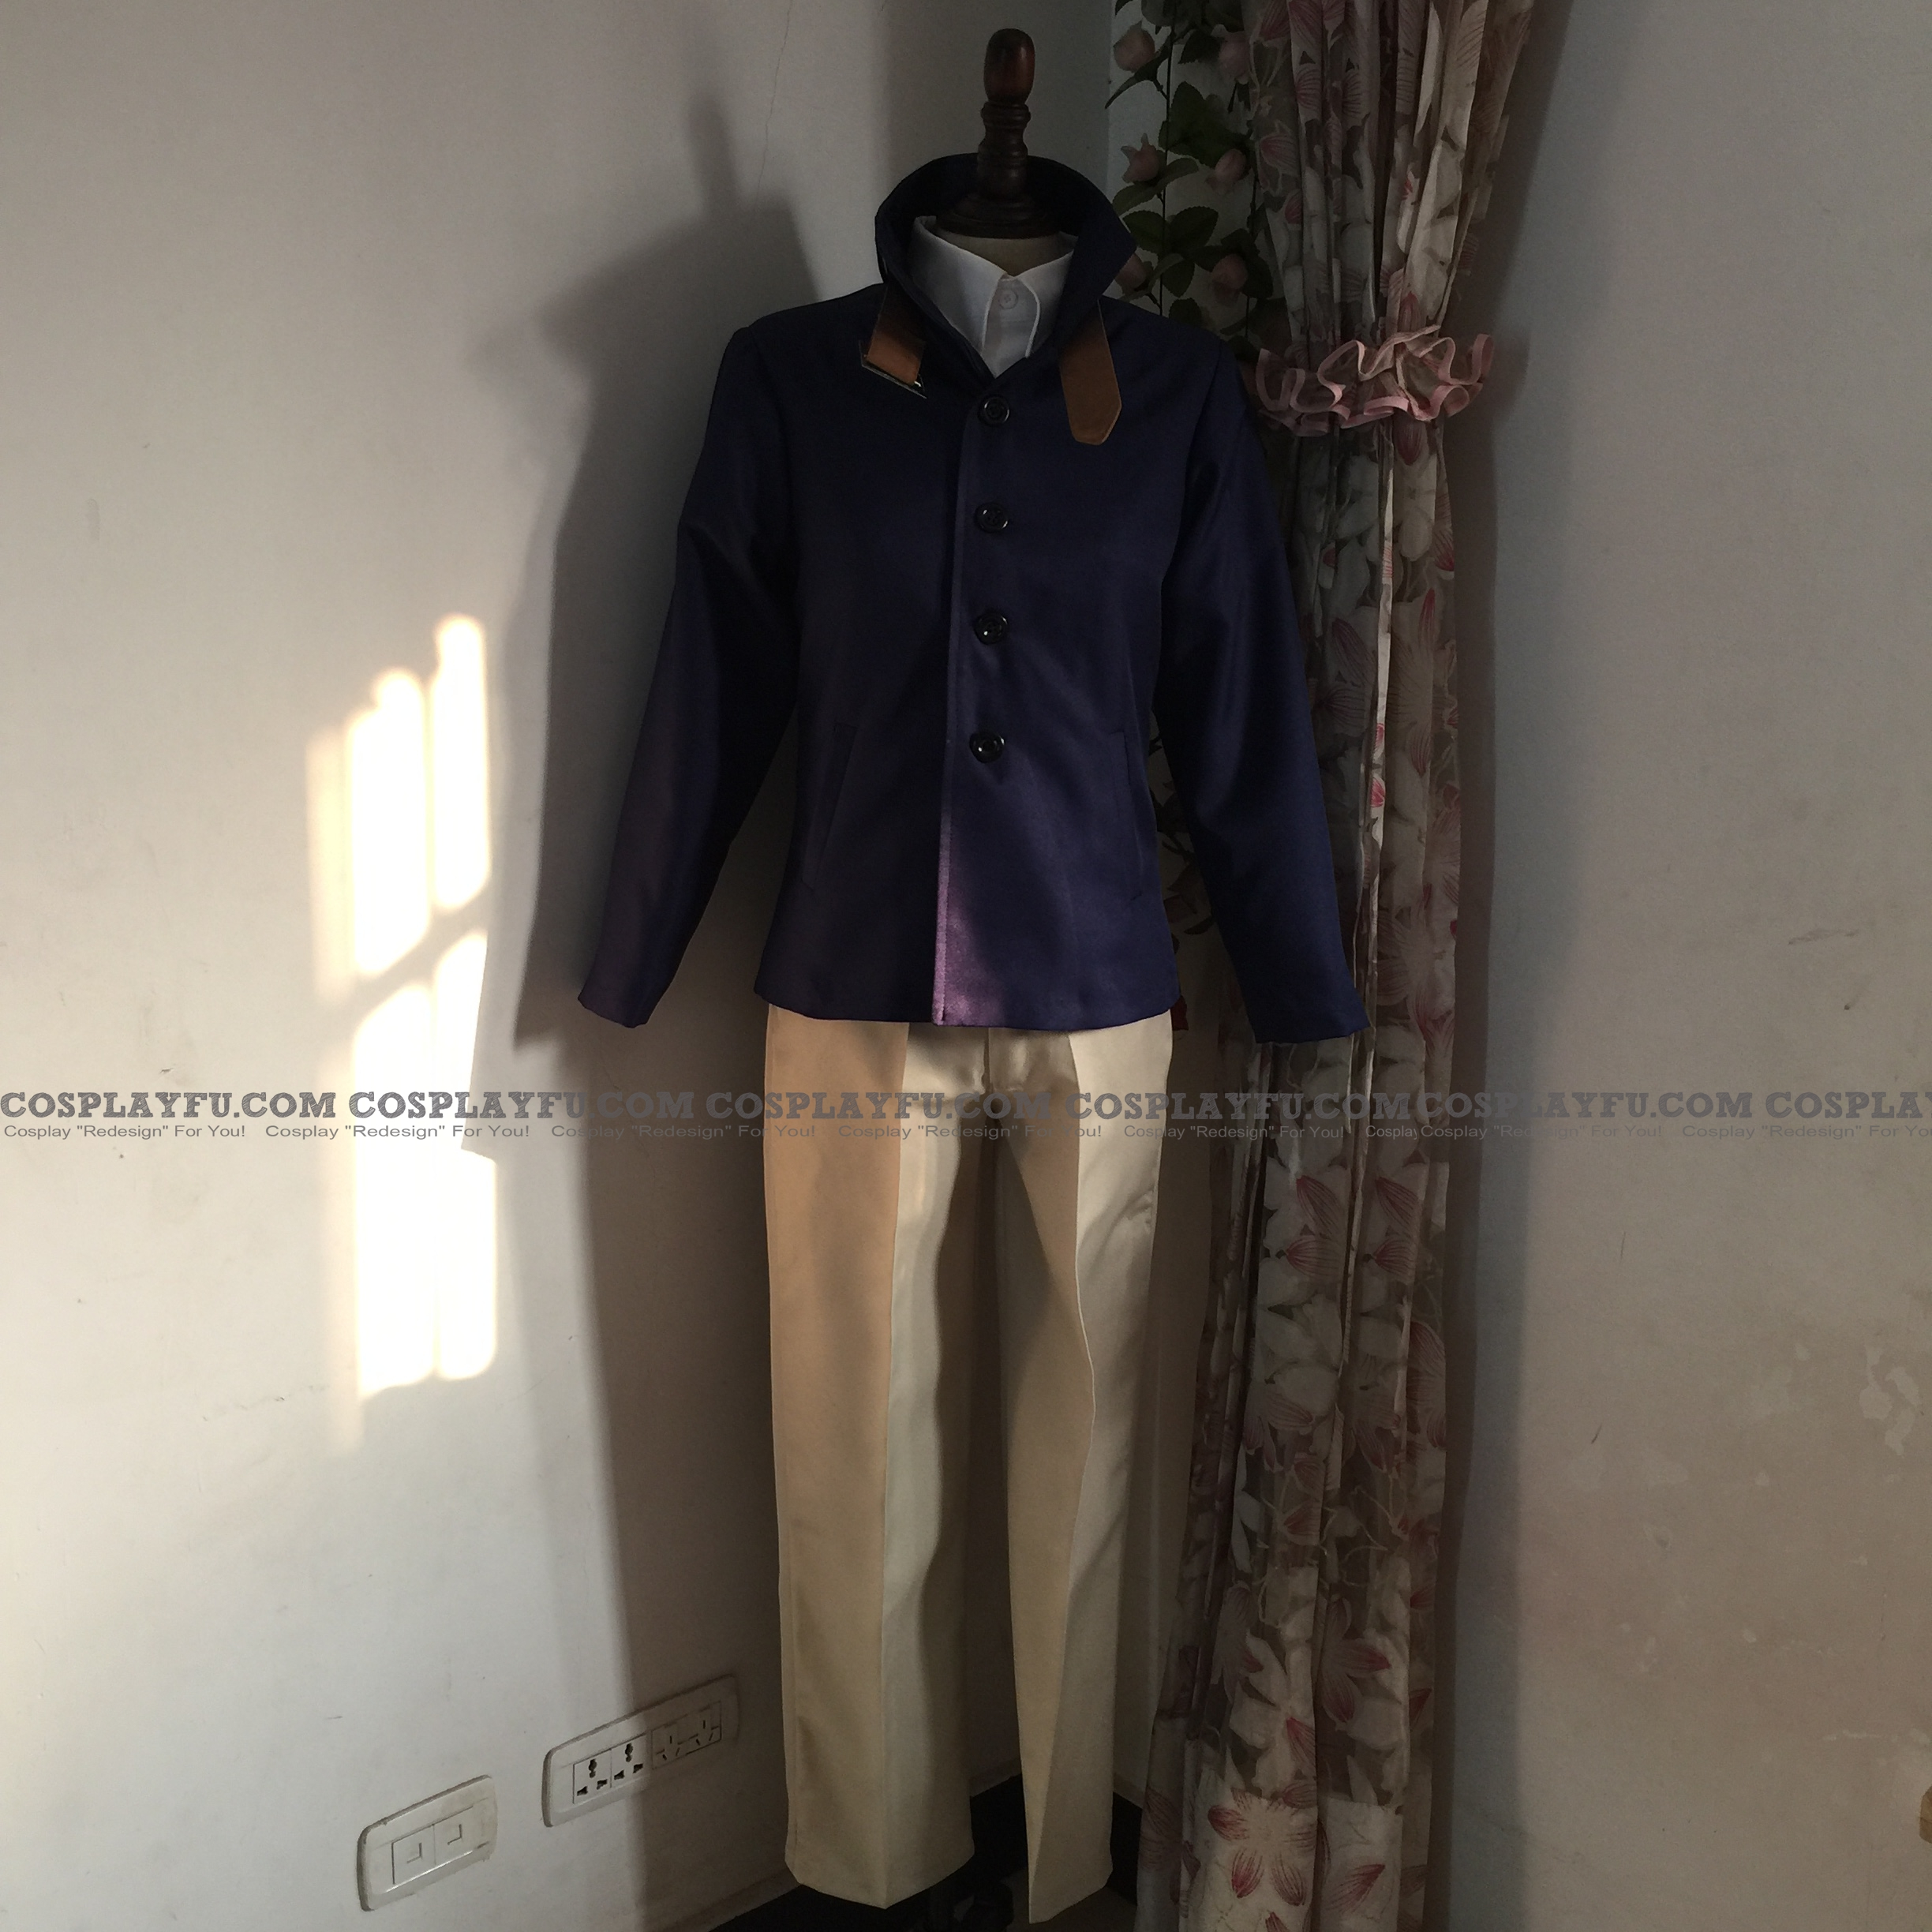 Tatara Cosplay Costume from K